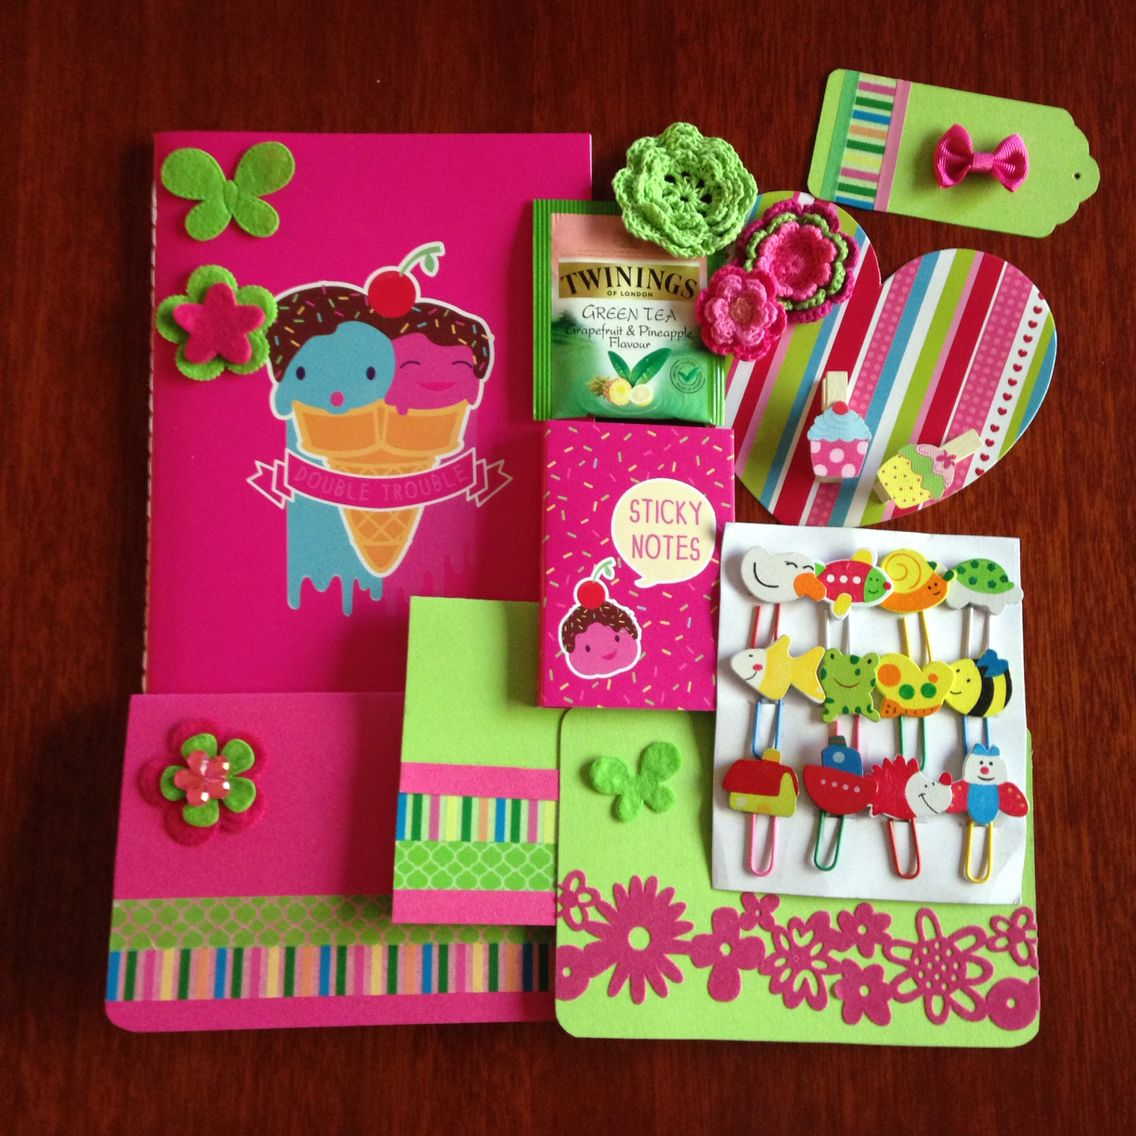 Hot Pink & Lime Green themed snail mail. Find me on insta @cegould